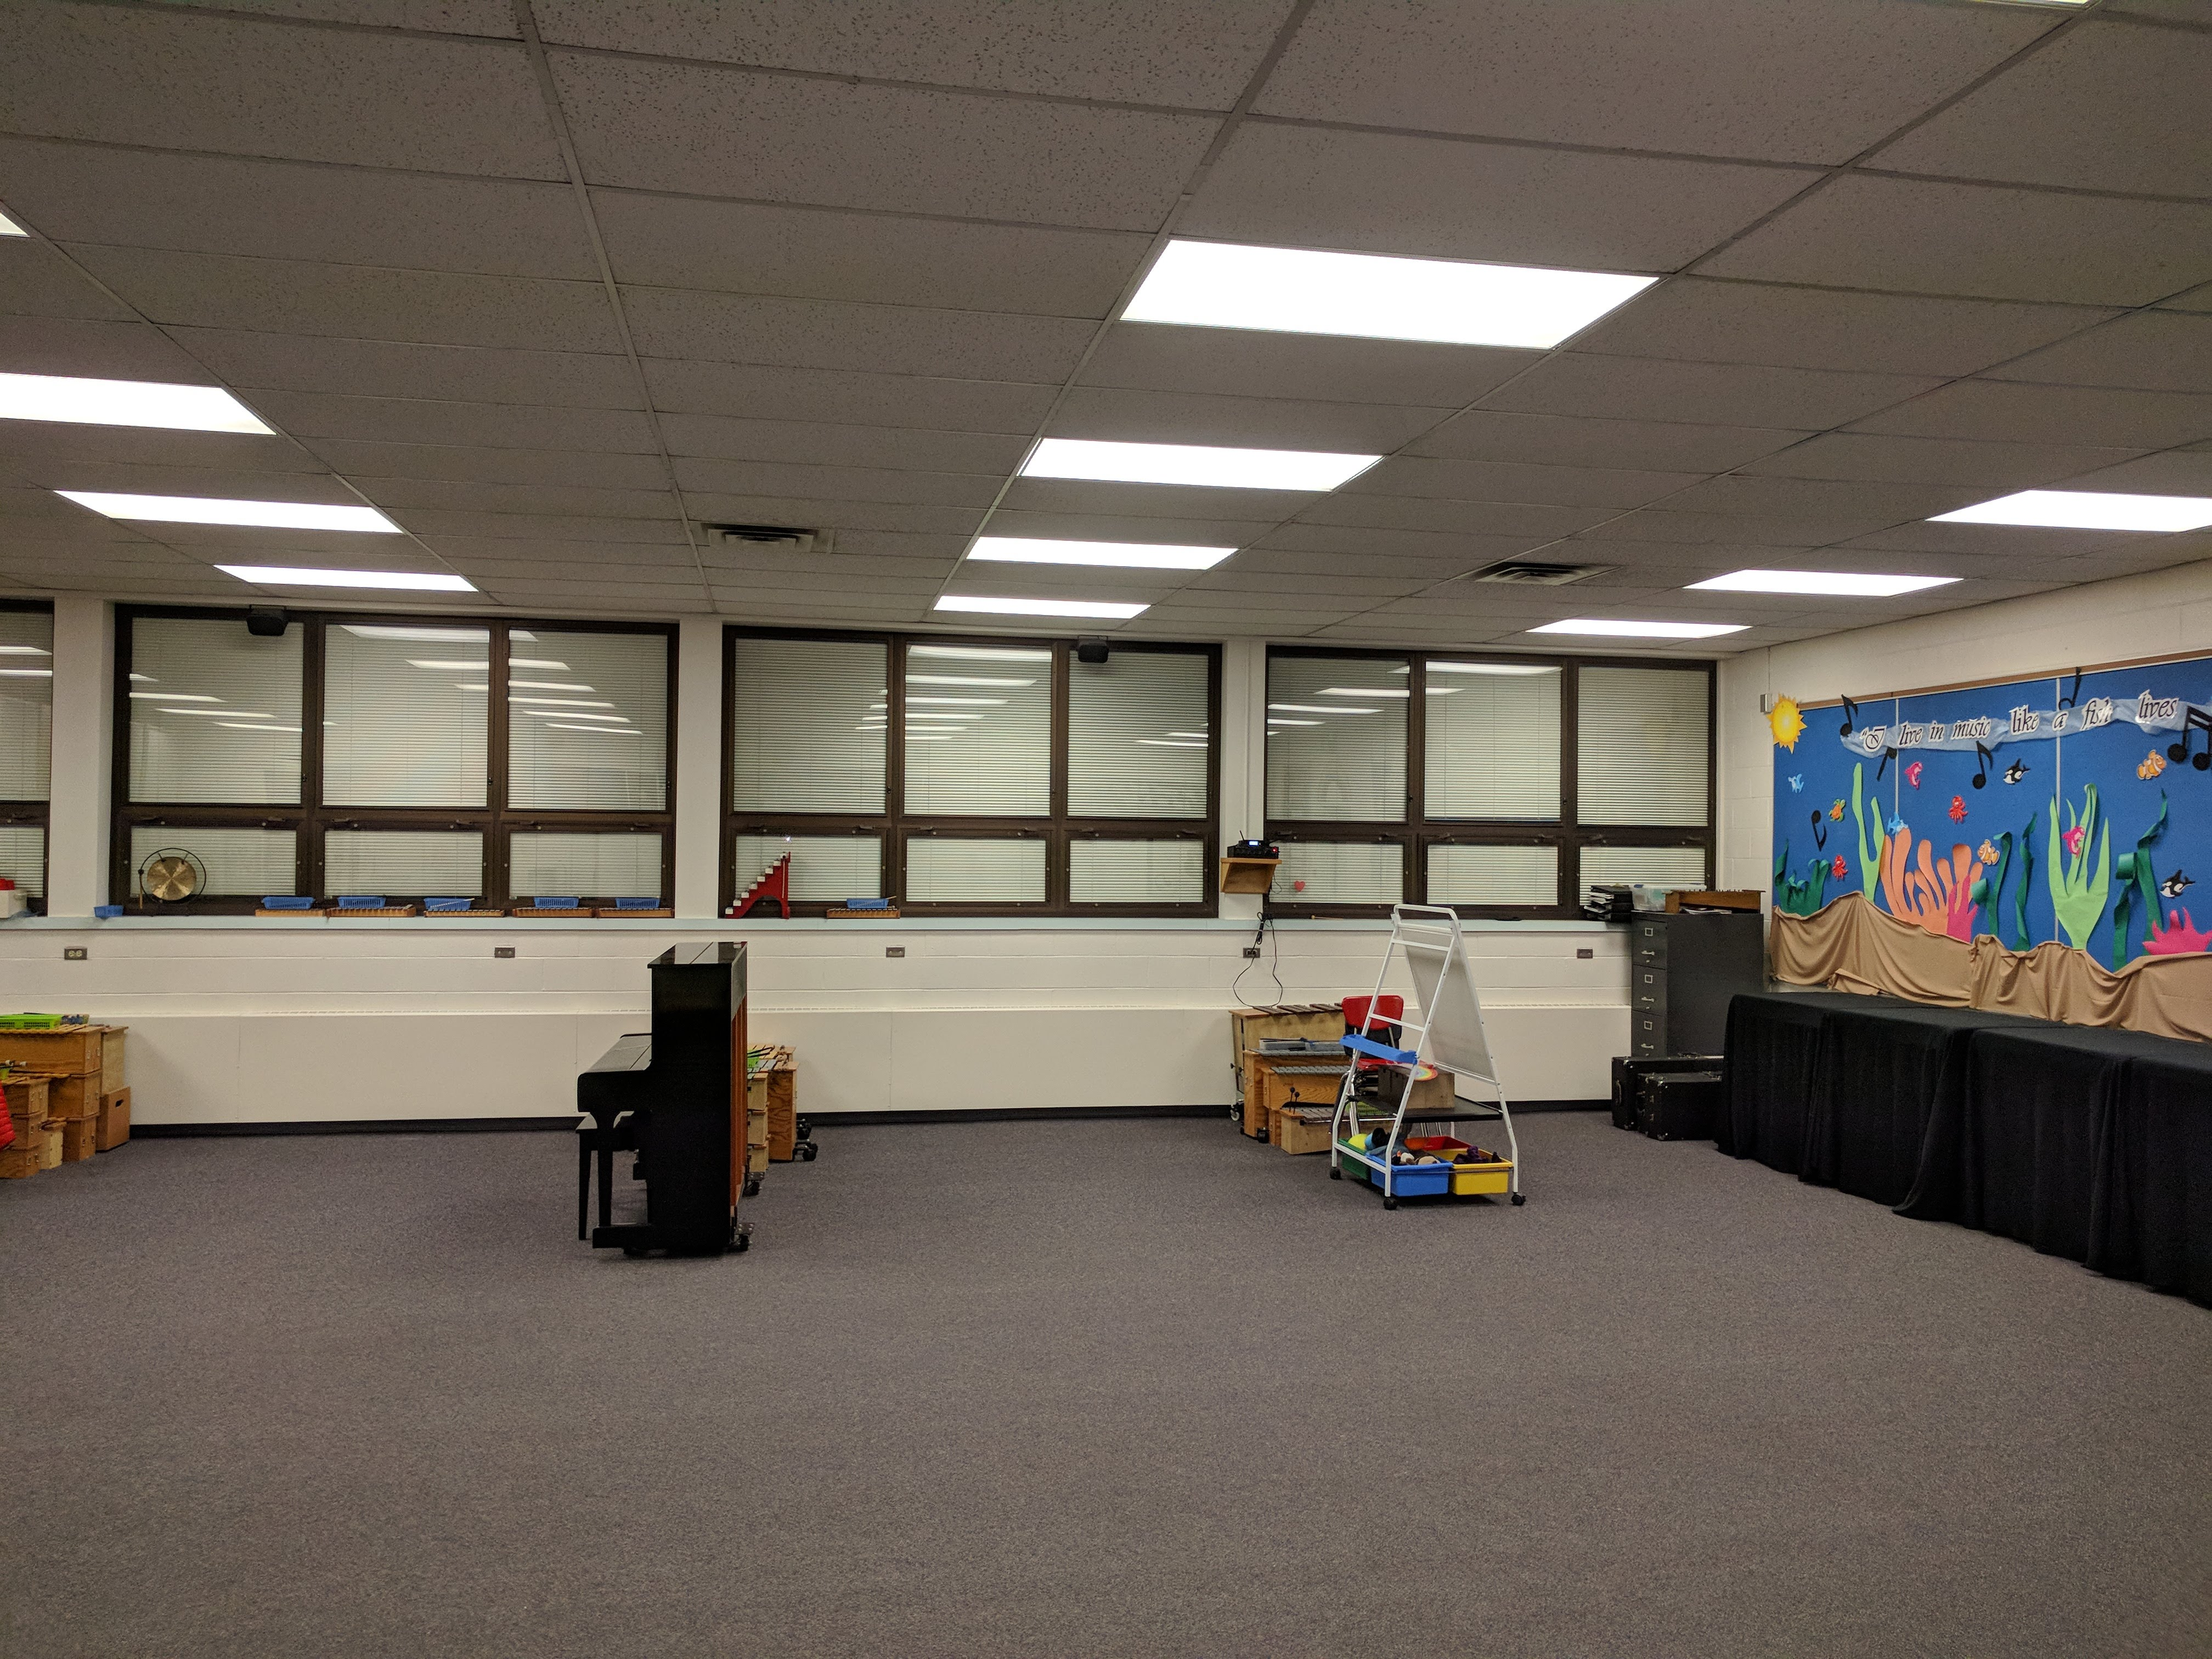 LED lighting solutions for a school